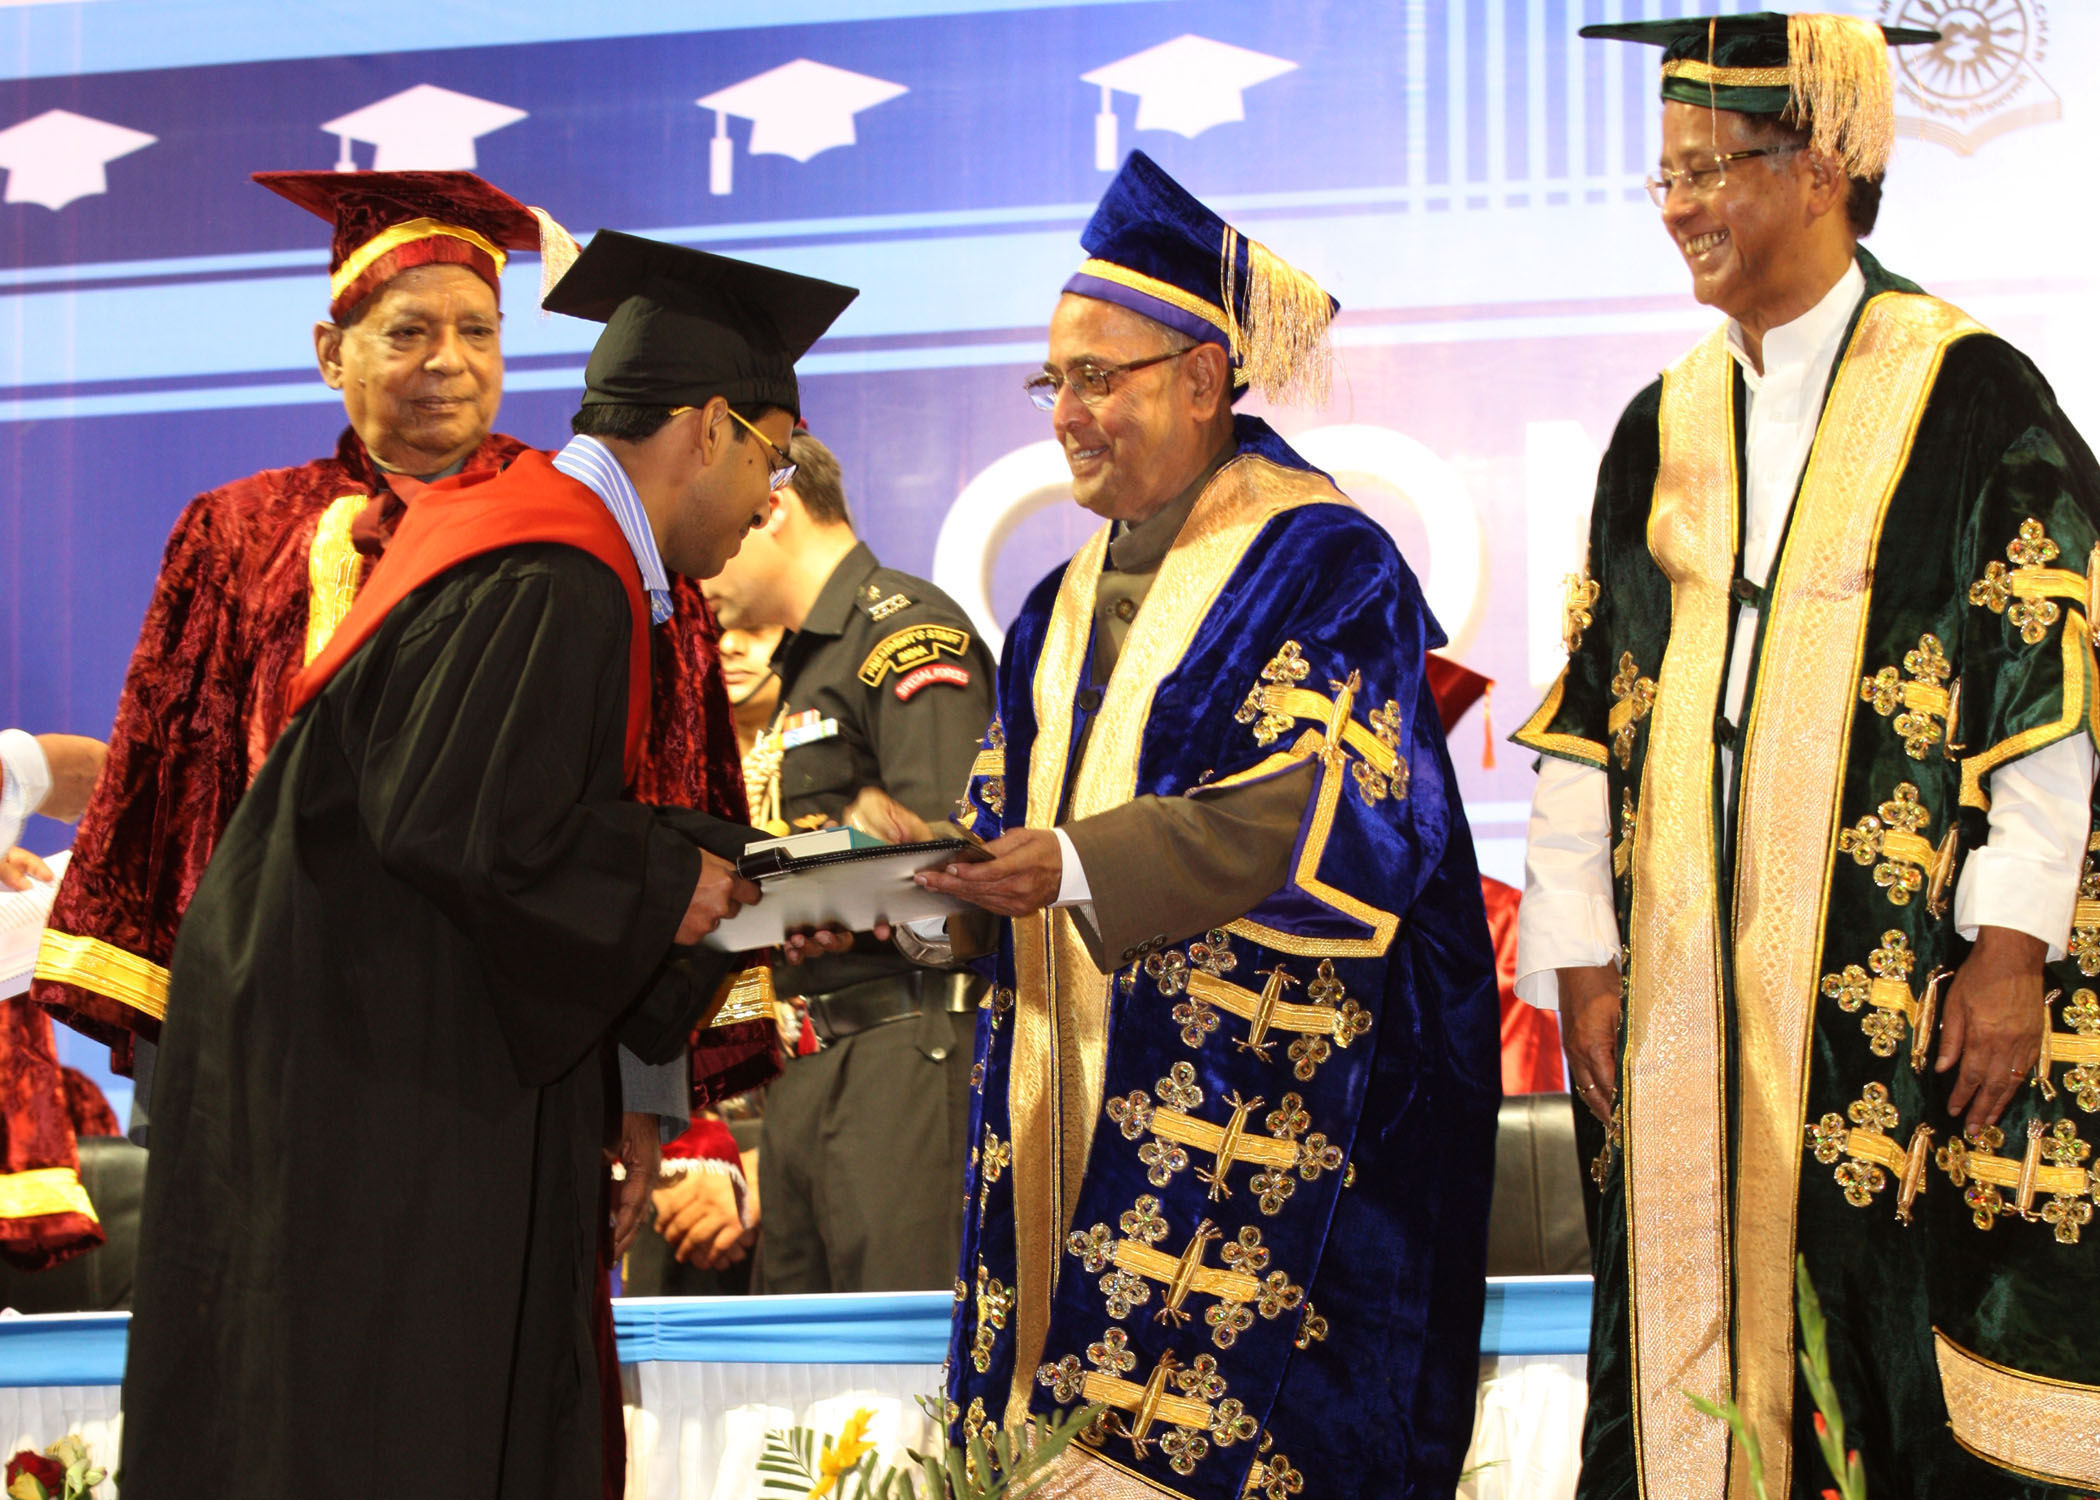 File:Pranab Mukherjee presenting the degree to a student, at